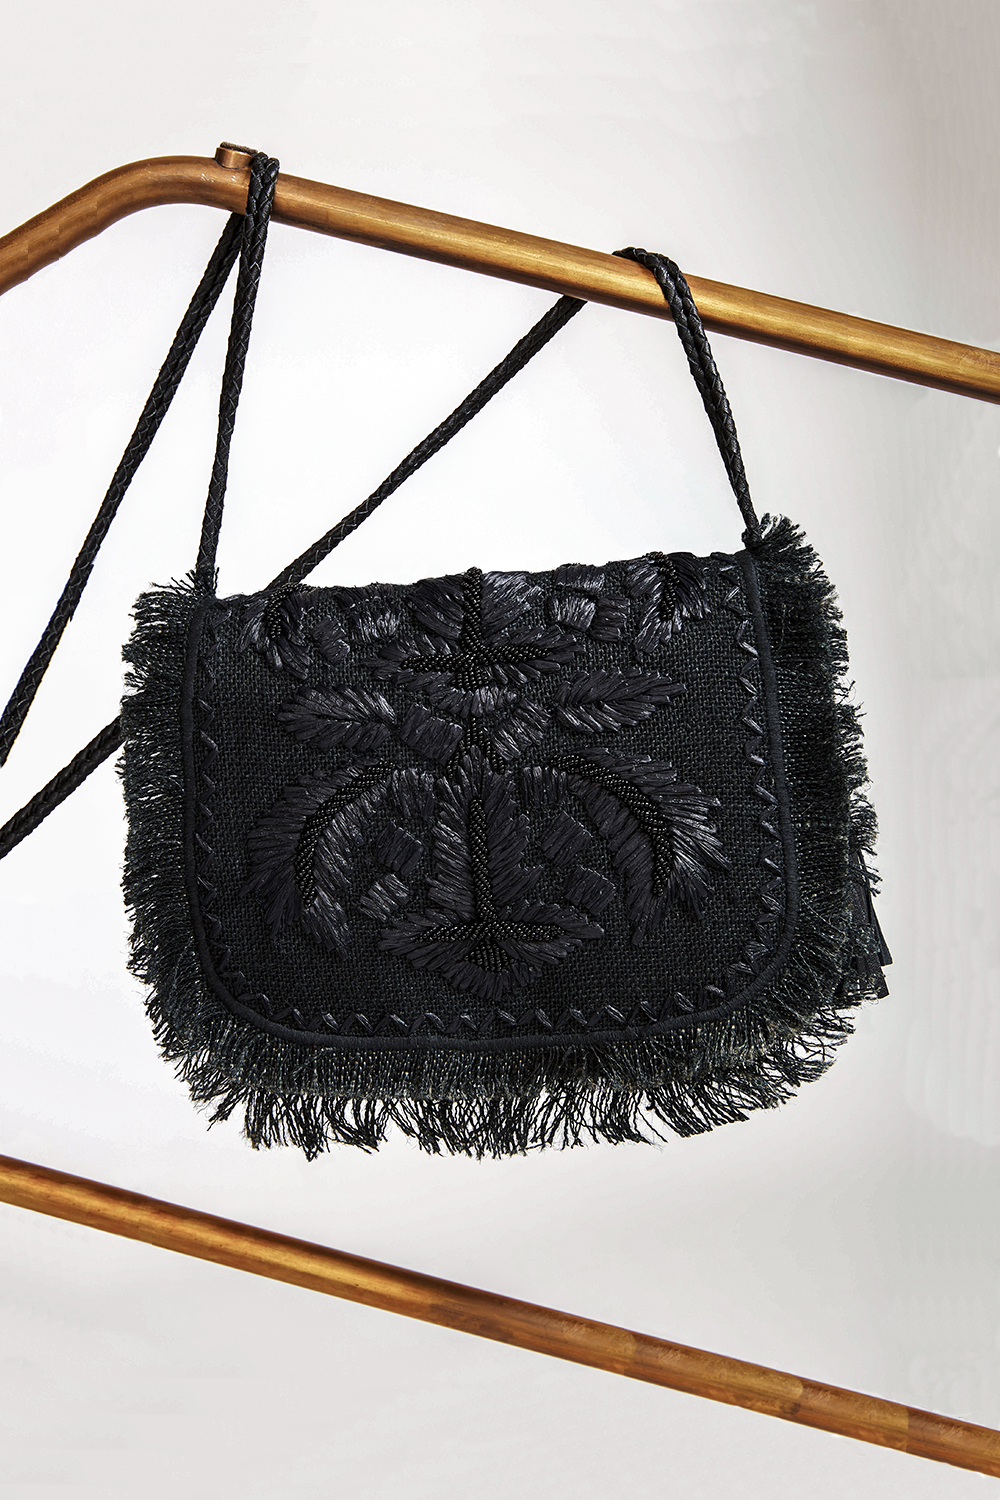 Petit sac Puppa noir - Antik Batik (photo)